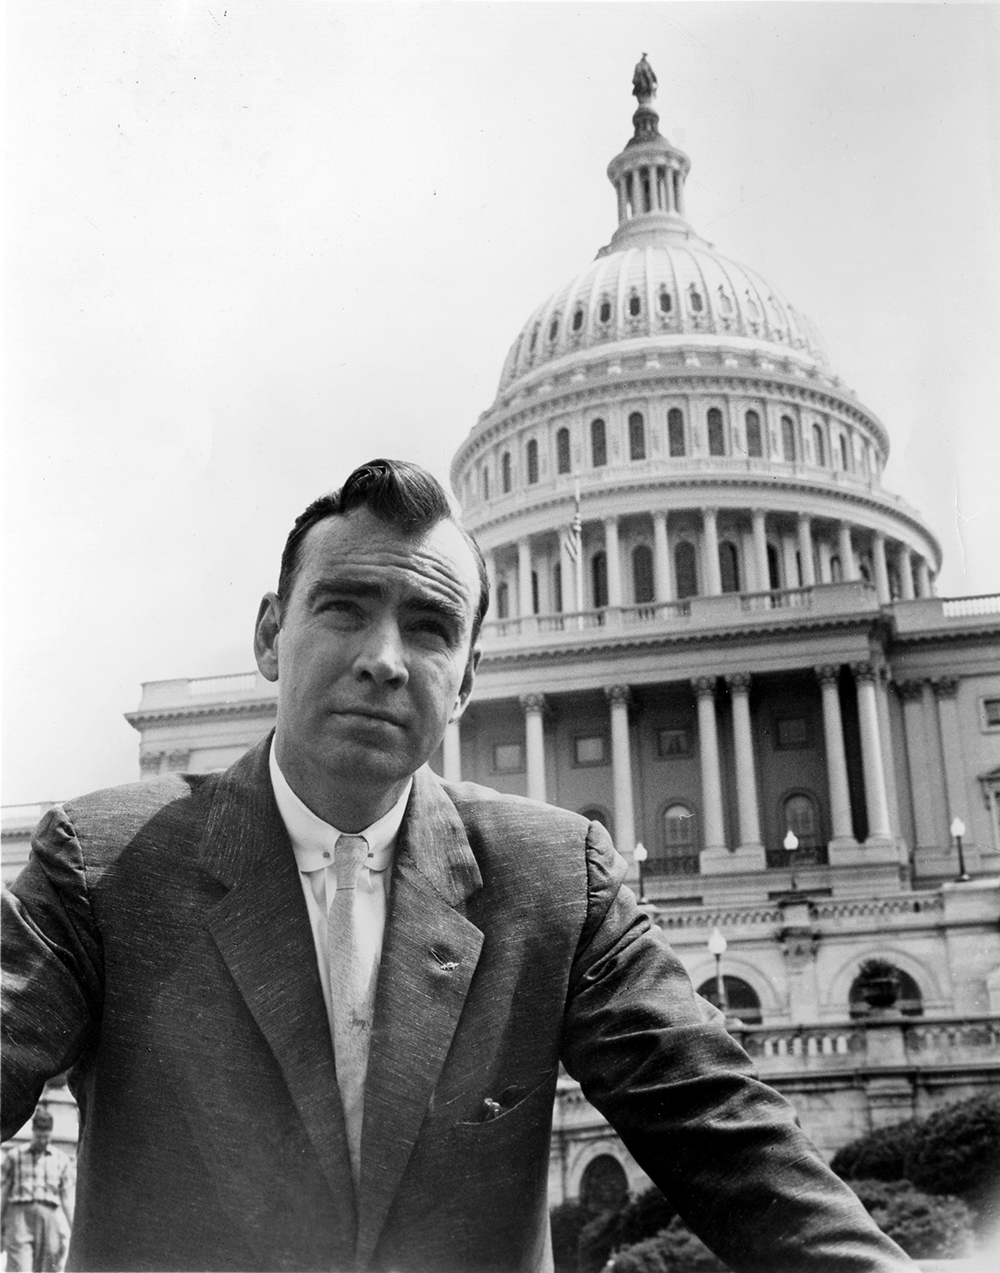 Jim Wright on the steps of the U.S. Capitol, 1960s